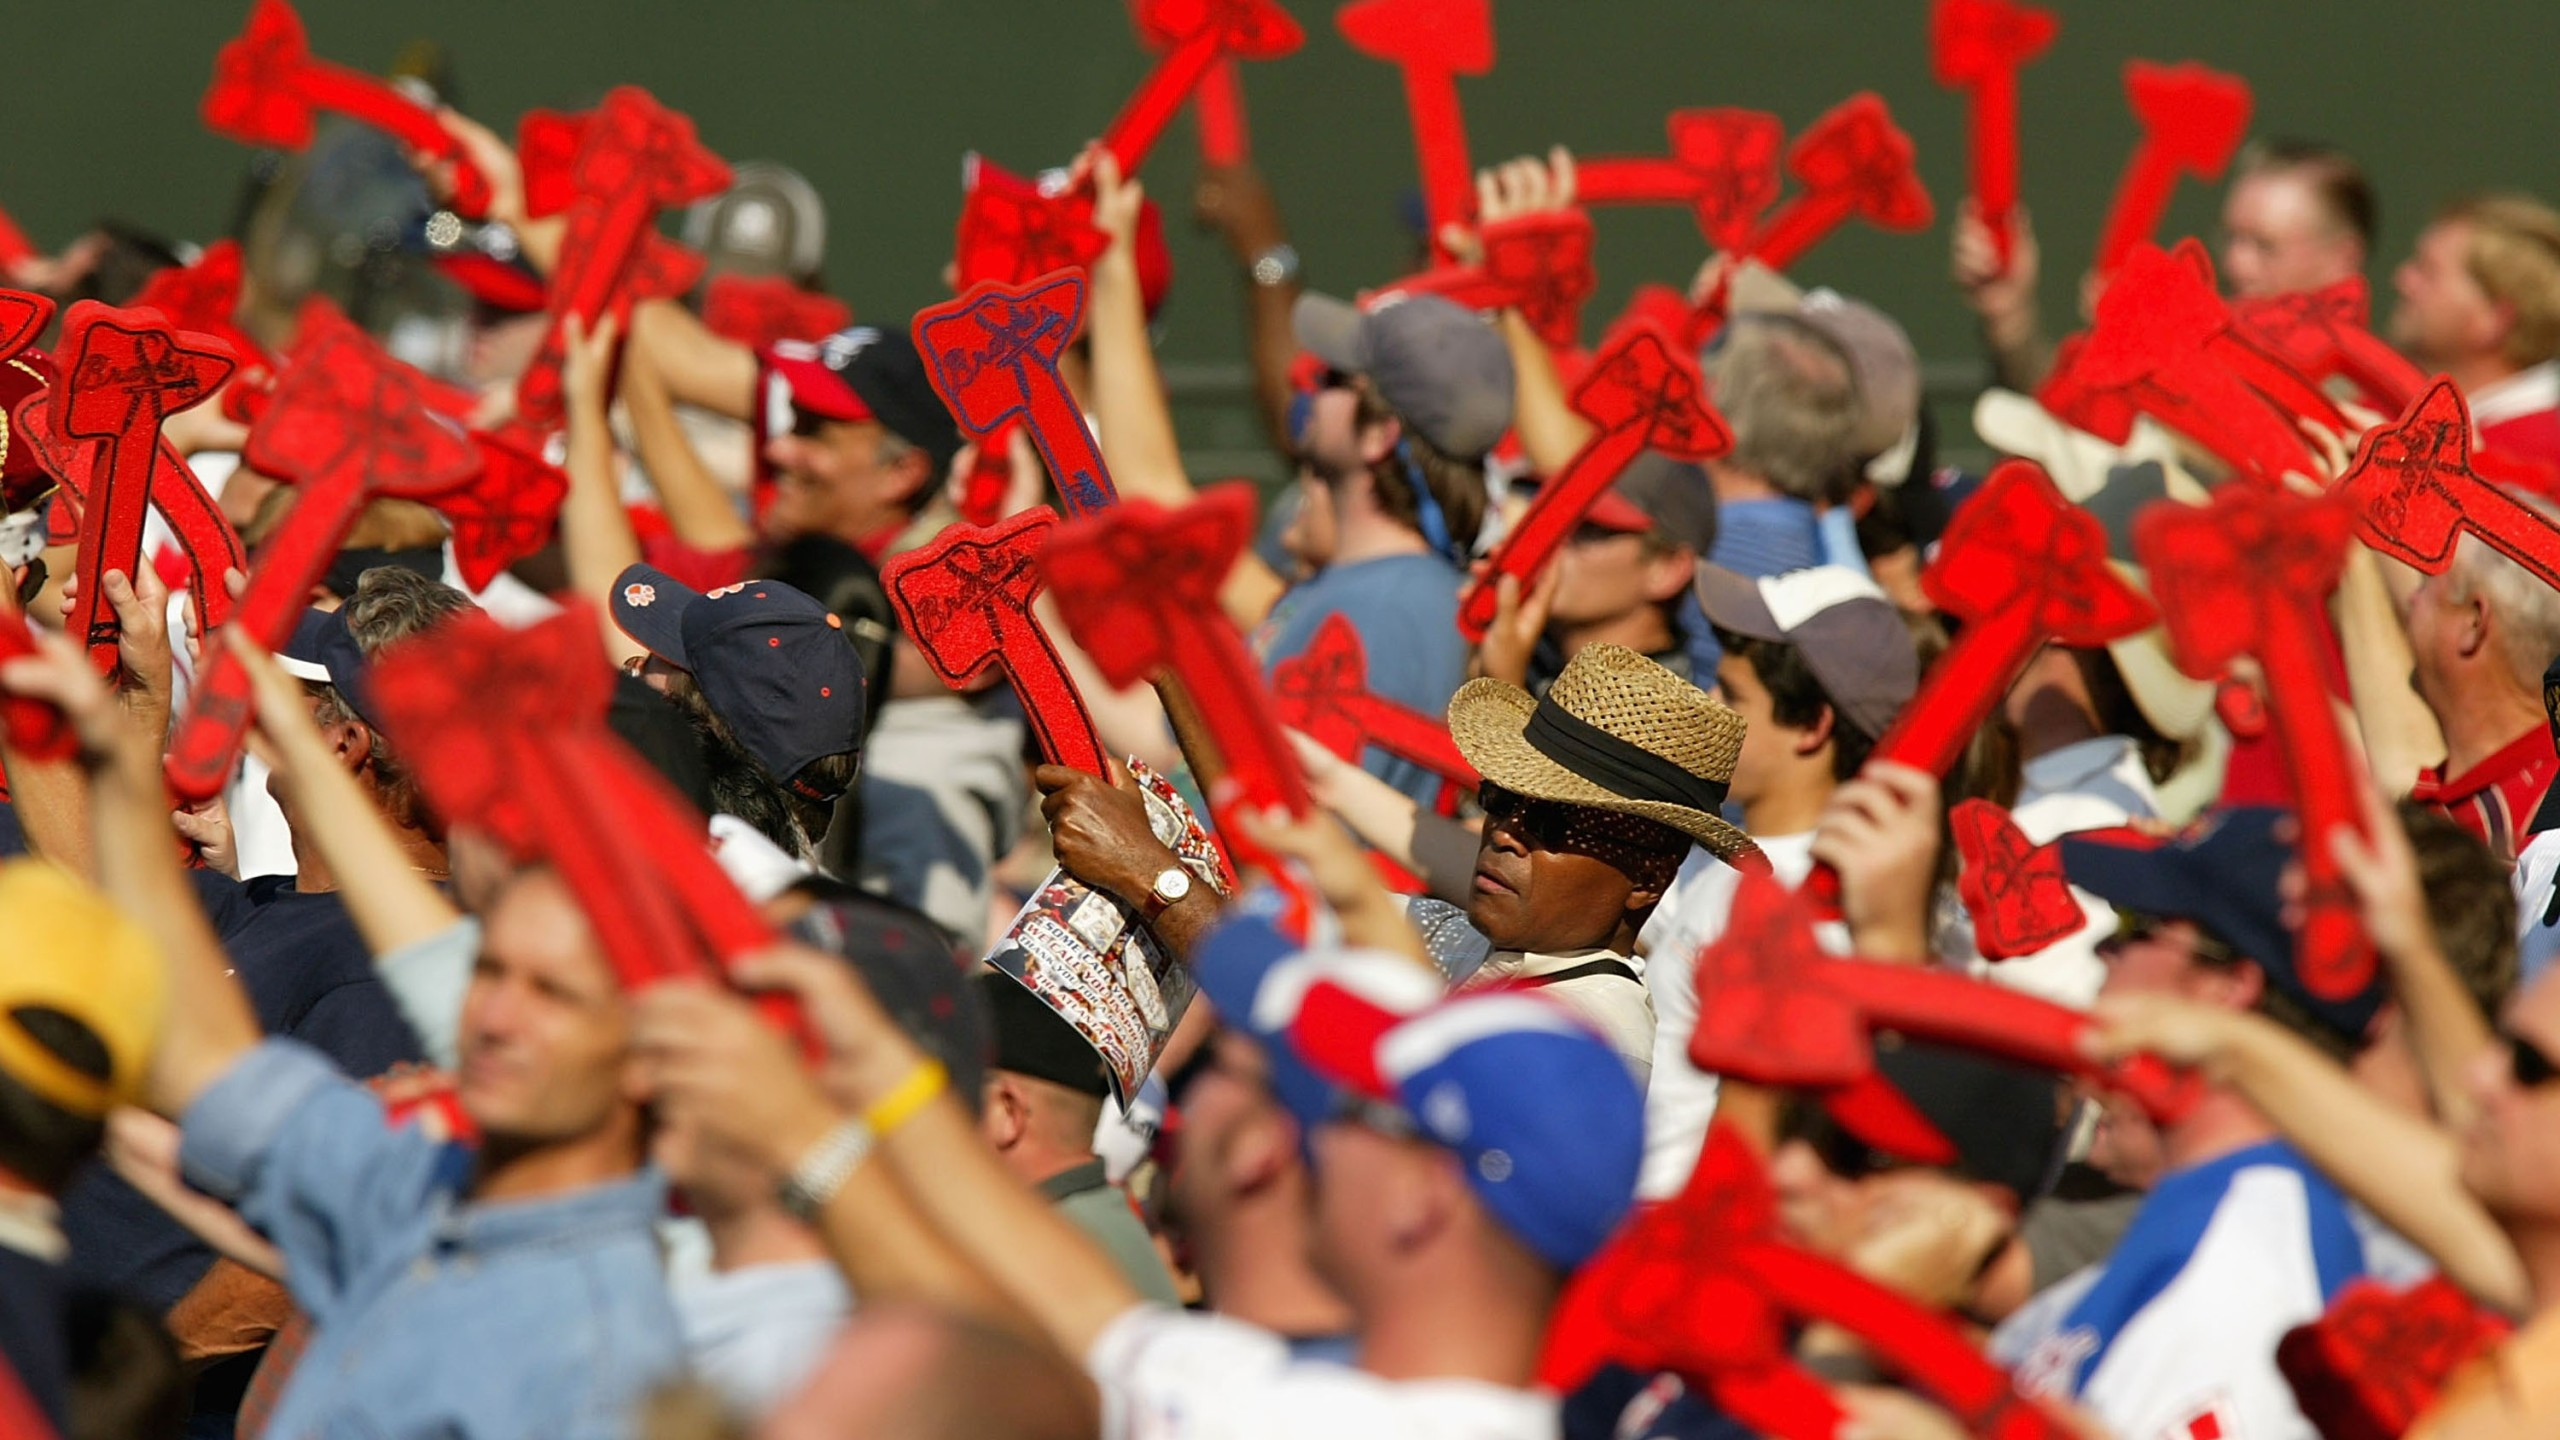 Fans of the Atlanta Braves do the Tomahawk Chop. (Photo by Streeter Lecka/Getty Images)